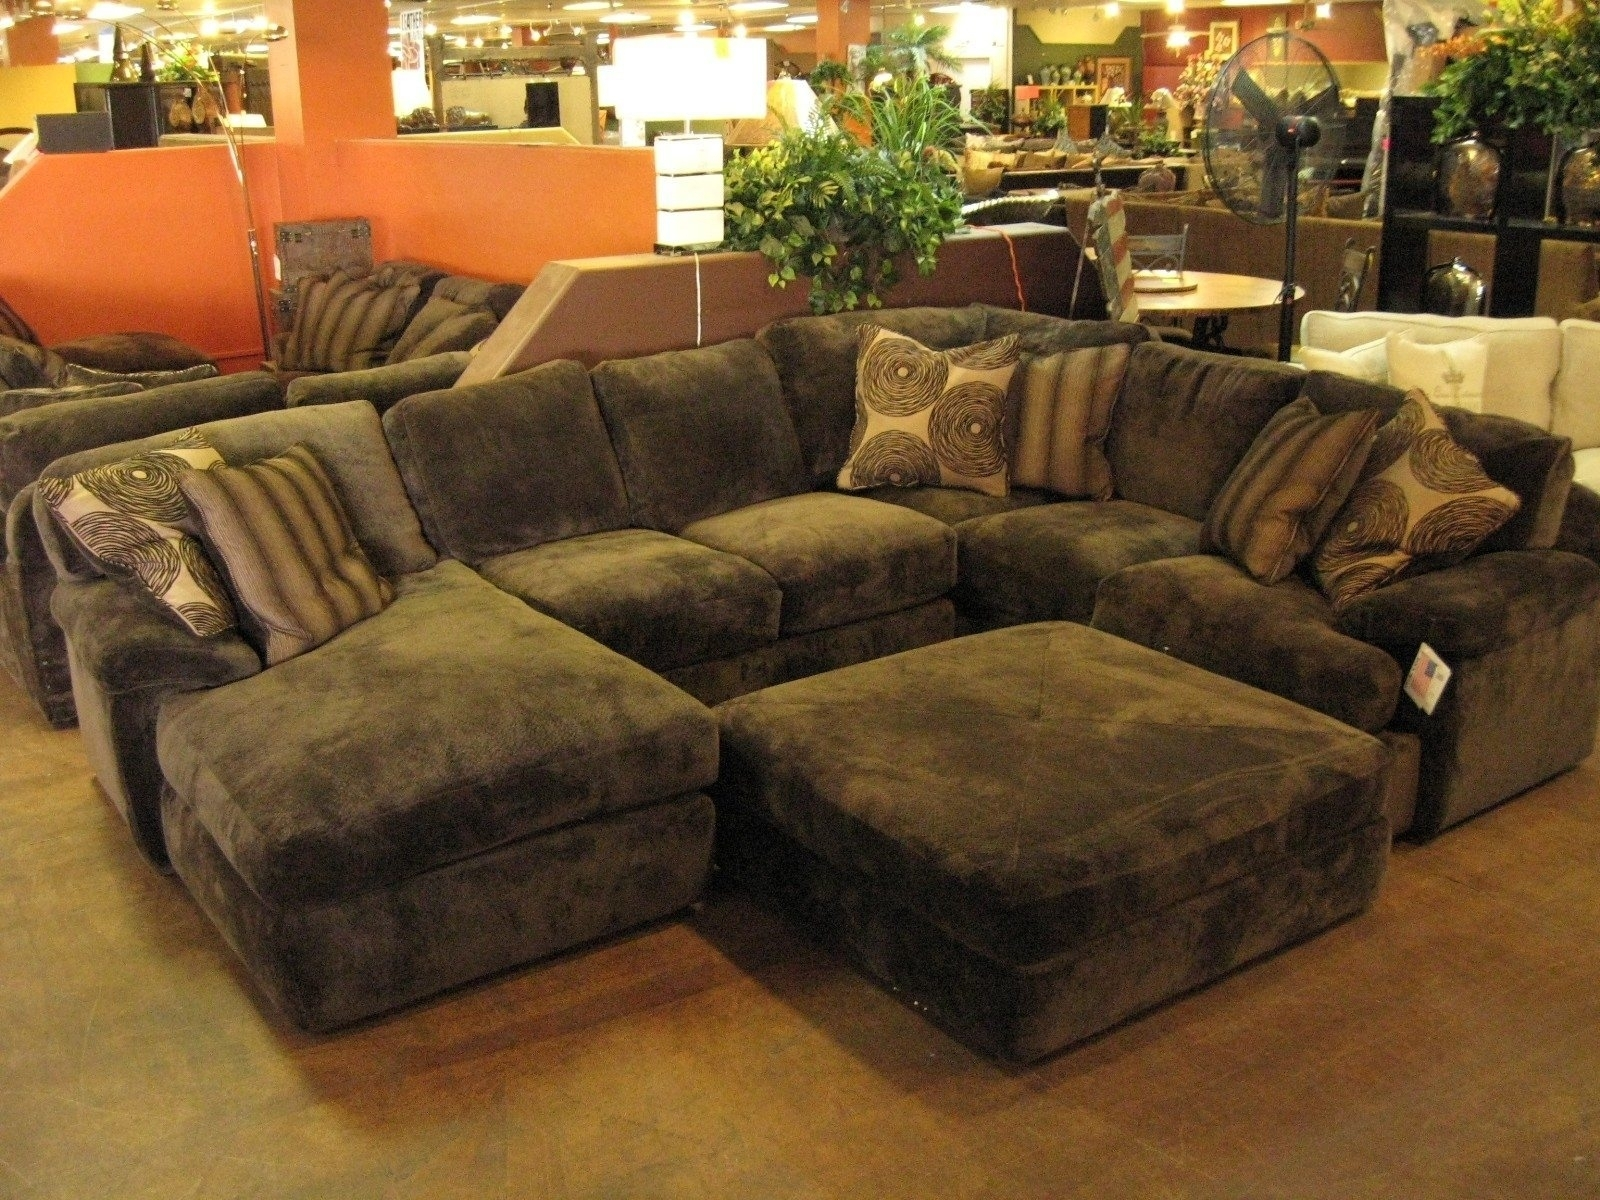 Stylish Sectional Sofa With Oversized Ottoman – Mediasupload With Sectionals With Oversized Ottoman (View 15 of 15)